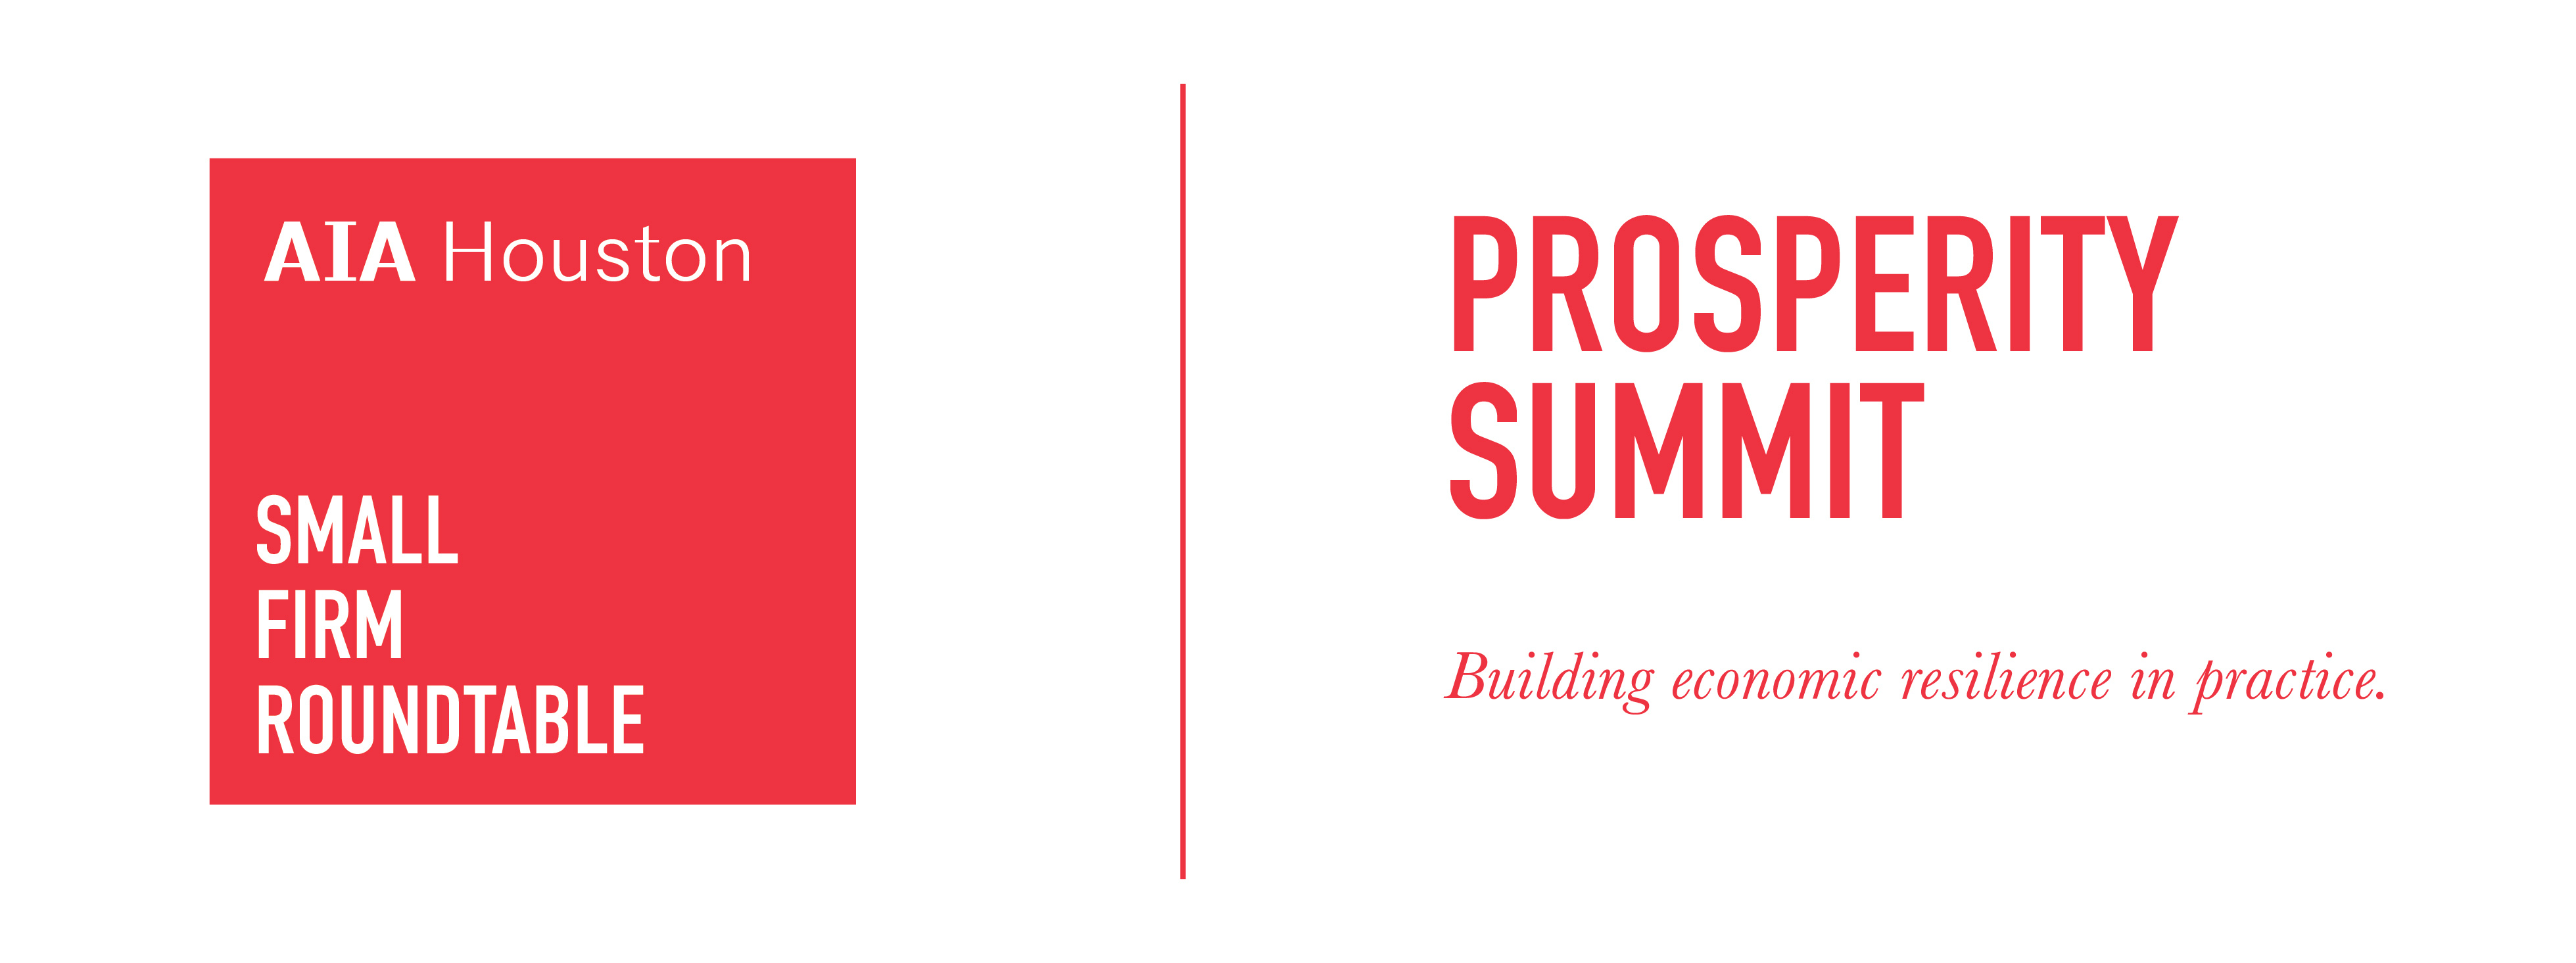 AIA Prosperity Summit, Building Economic Resilience in Practice @ AIA/Houston | Houston | Texas | United States